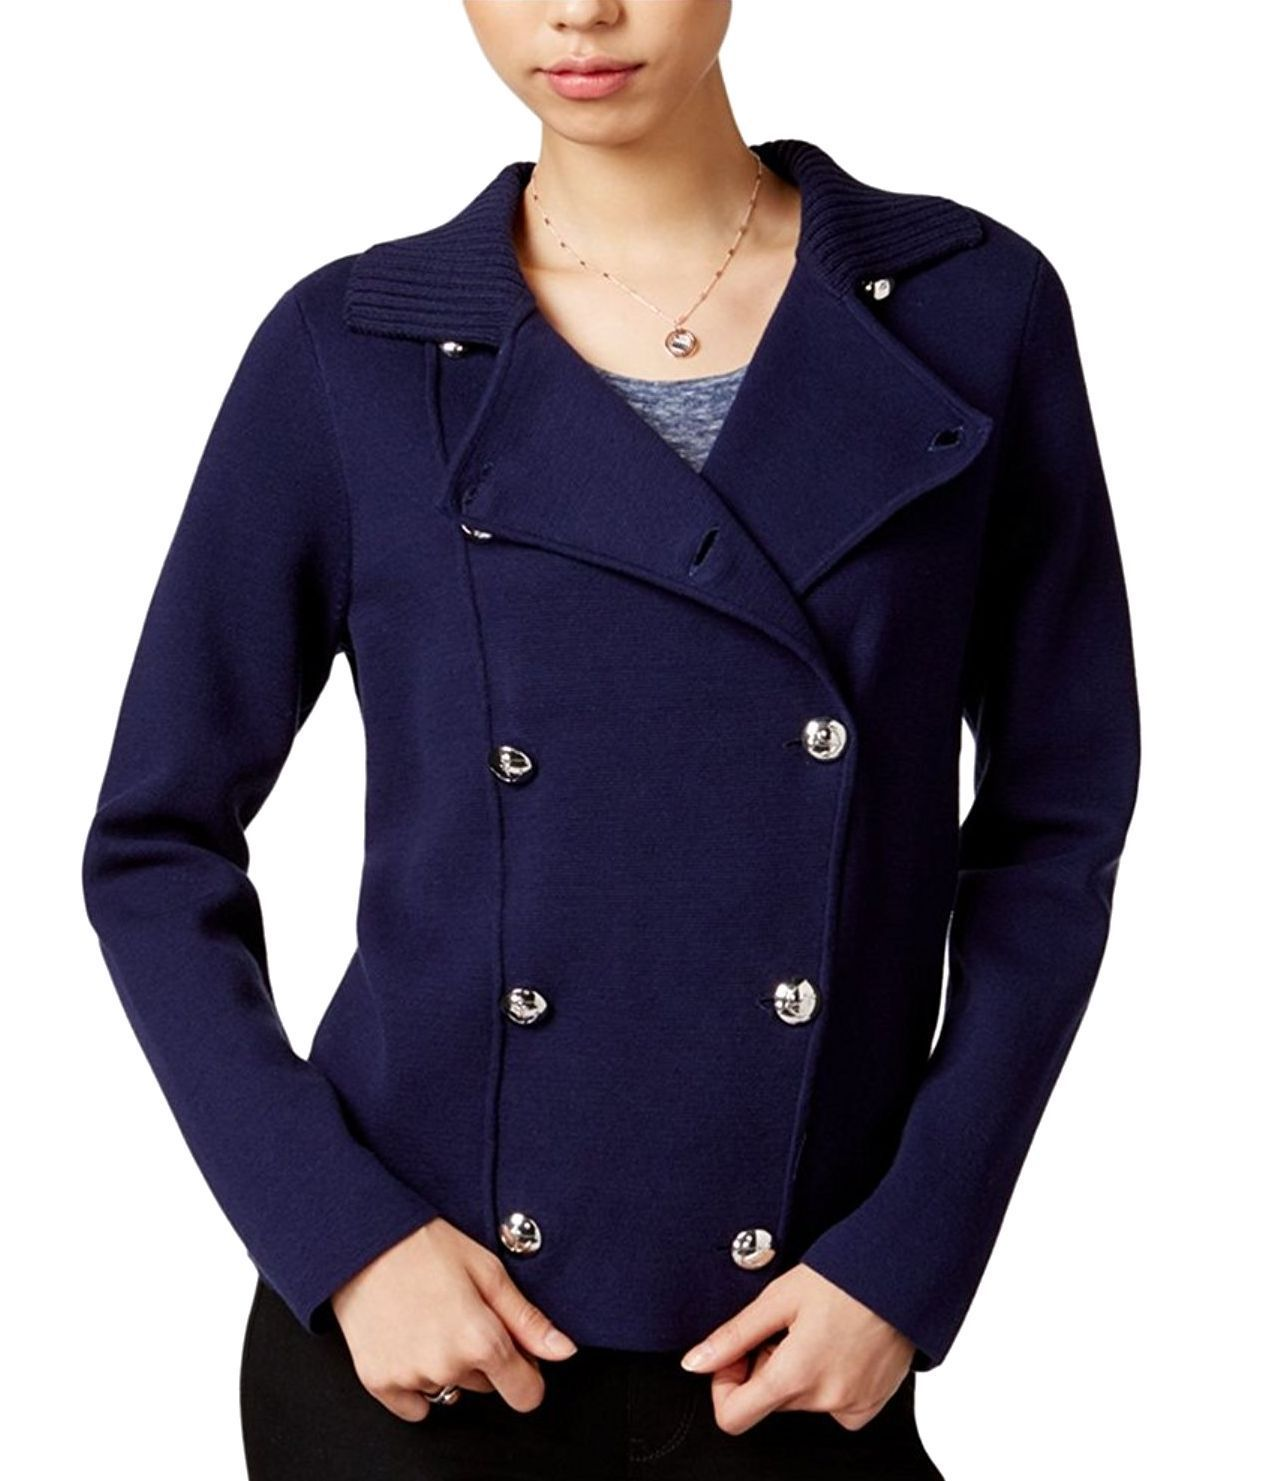 Maison Jules Double-Breasted Sweater Jacket Blu Notte XXS